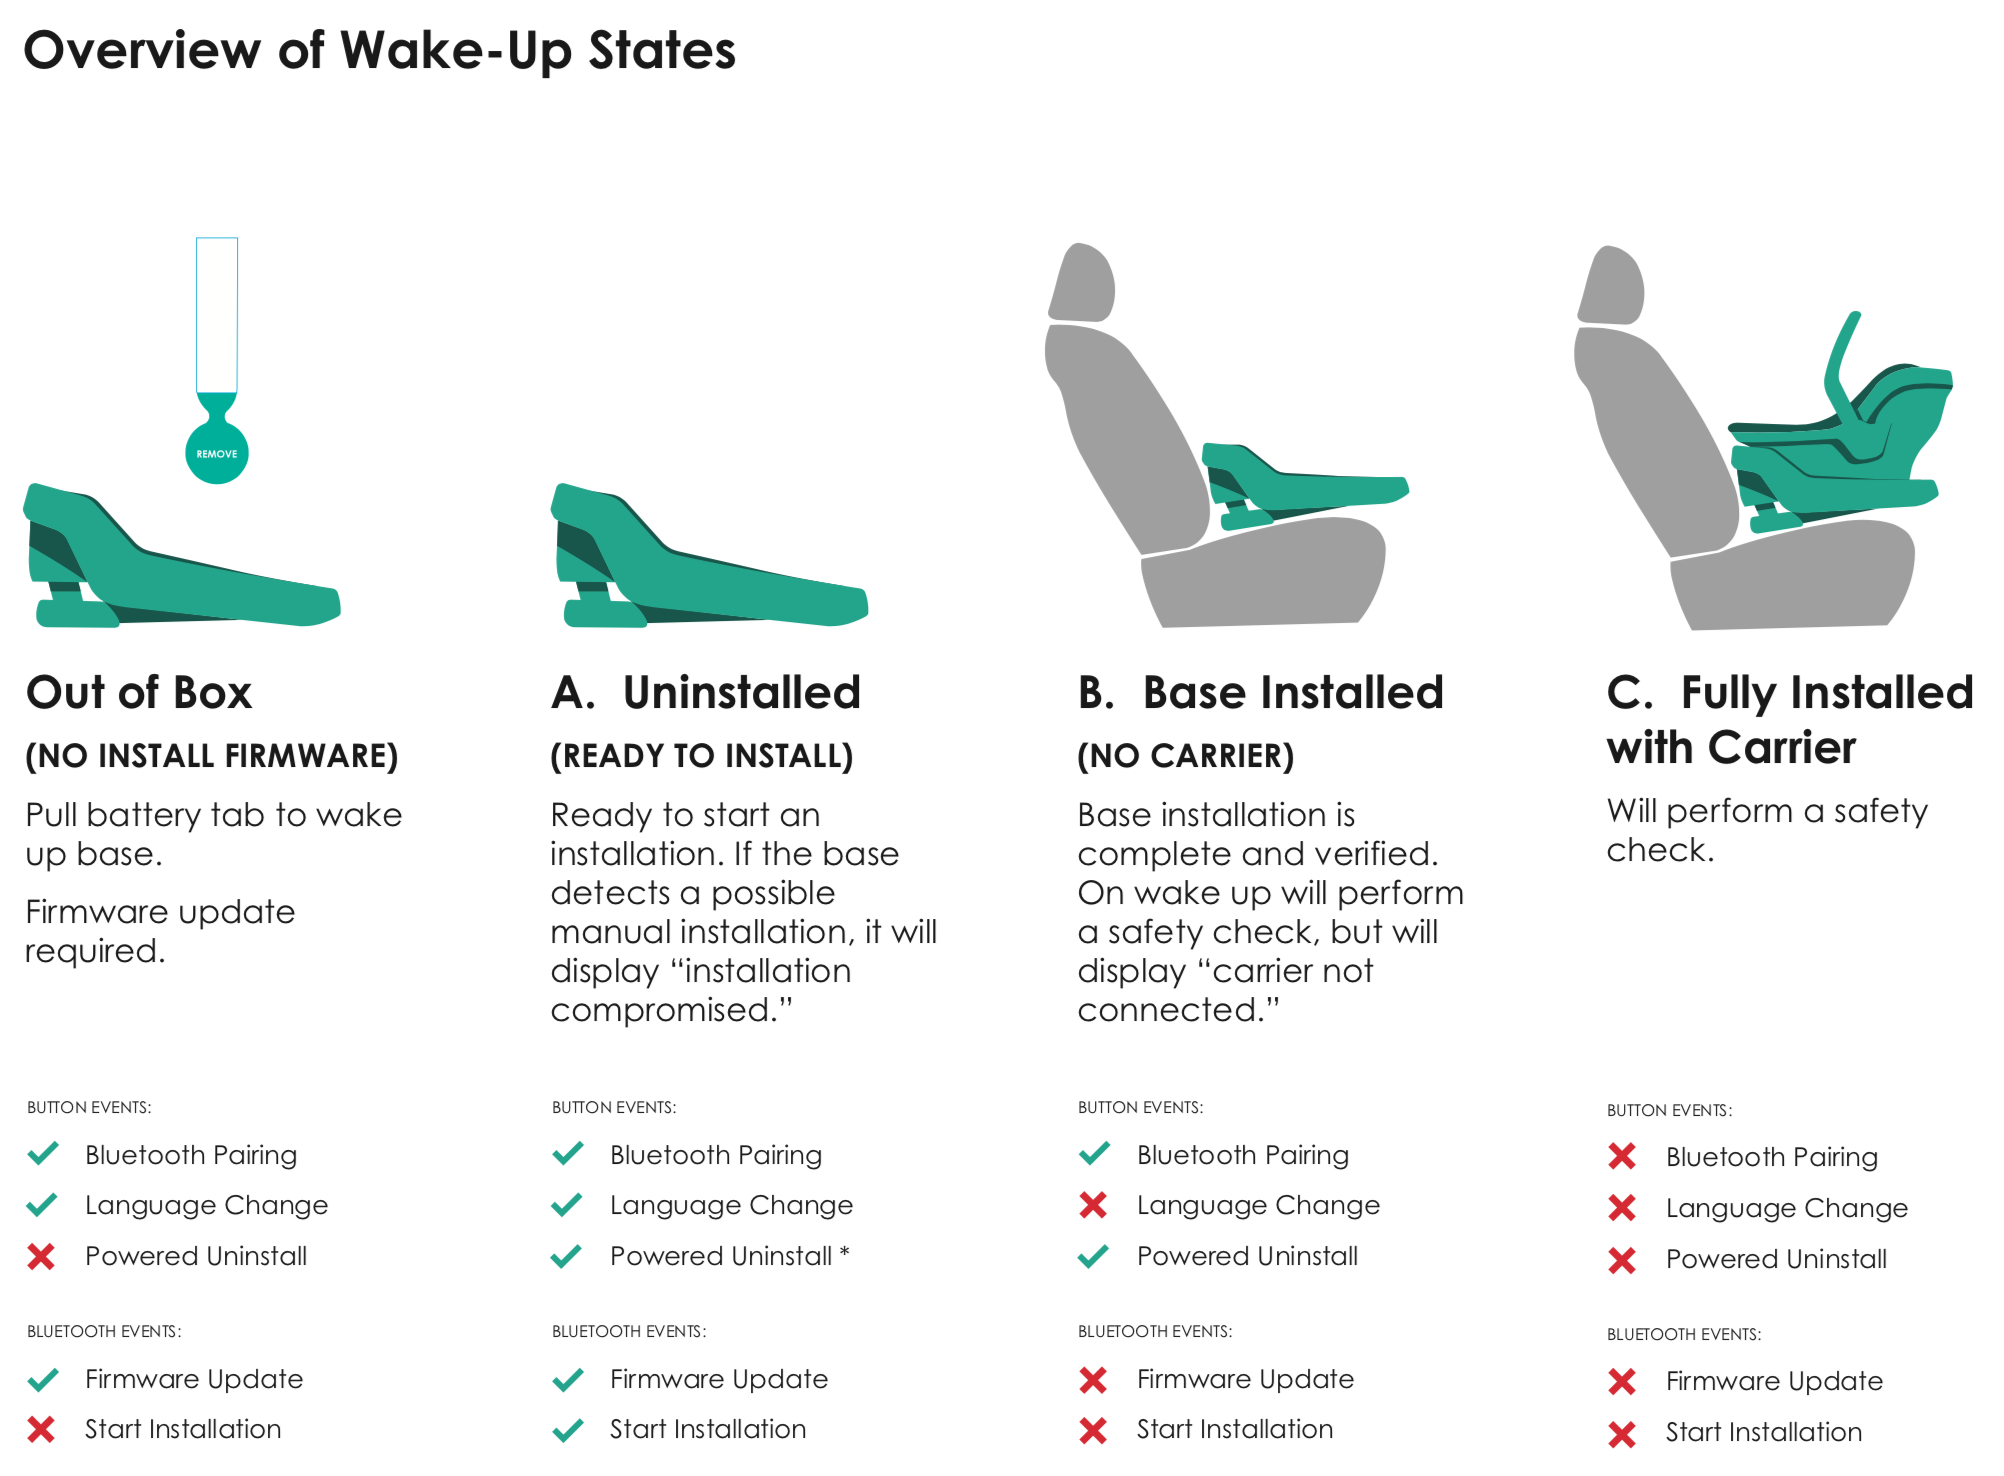 Infant Car Seat Base: Embedded software wake-up states, button events, and Bluetooth events (via connected app)